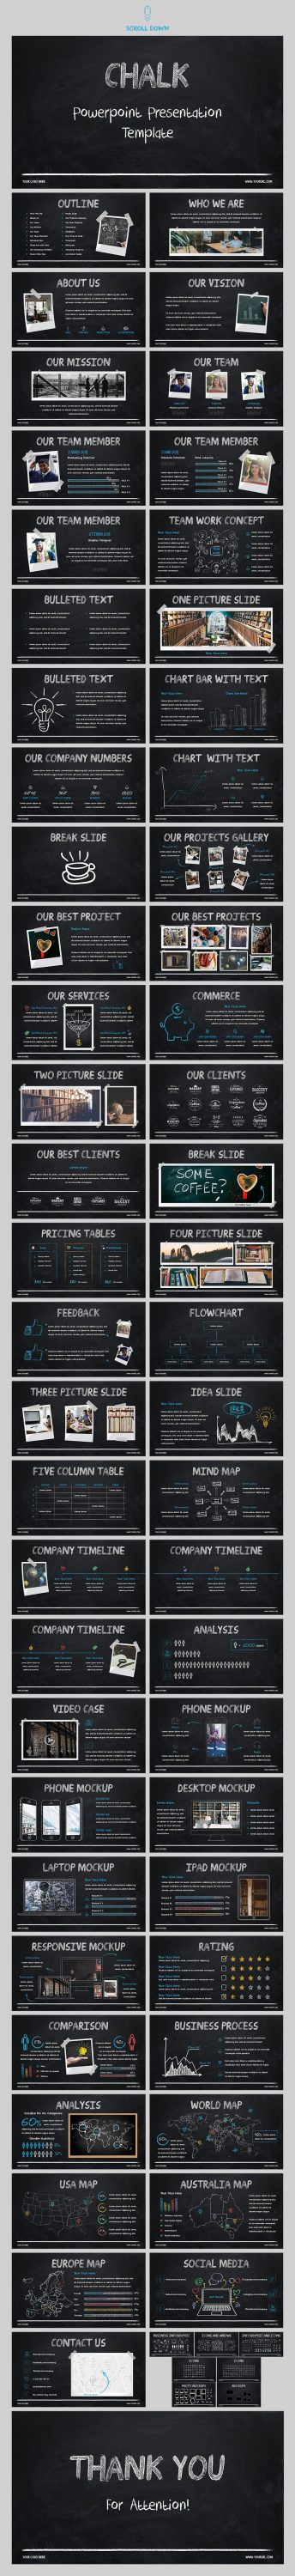 Slide Preview Chalk - Powerpoint Template.